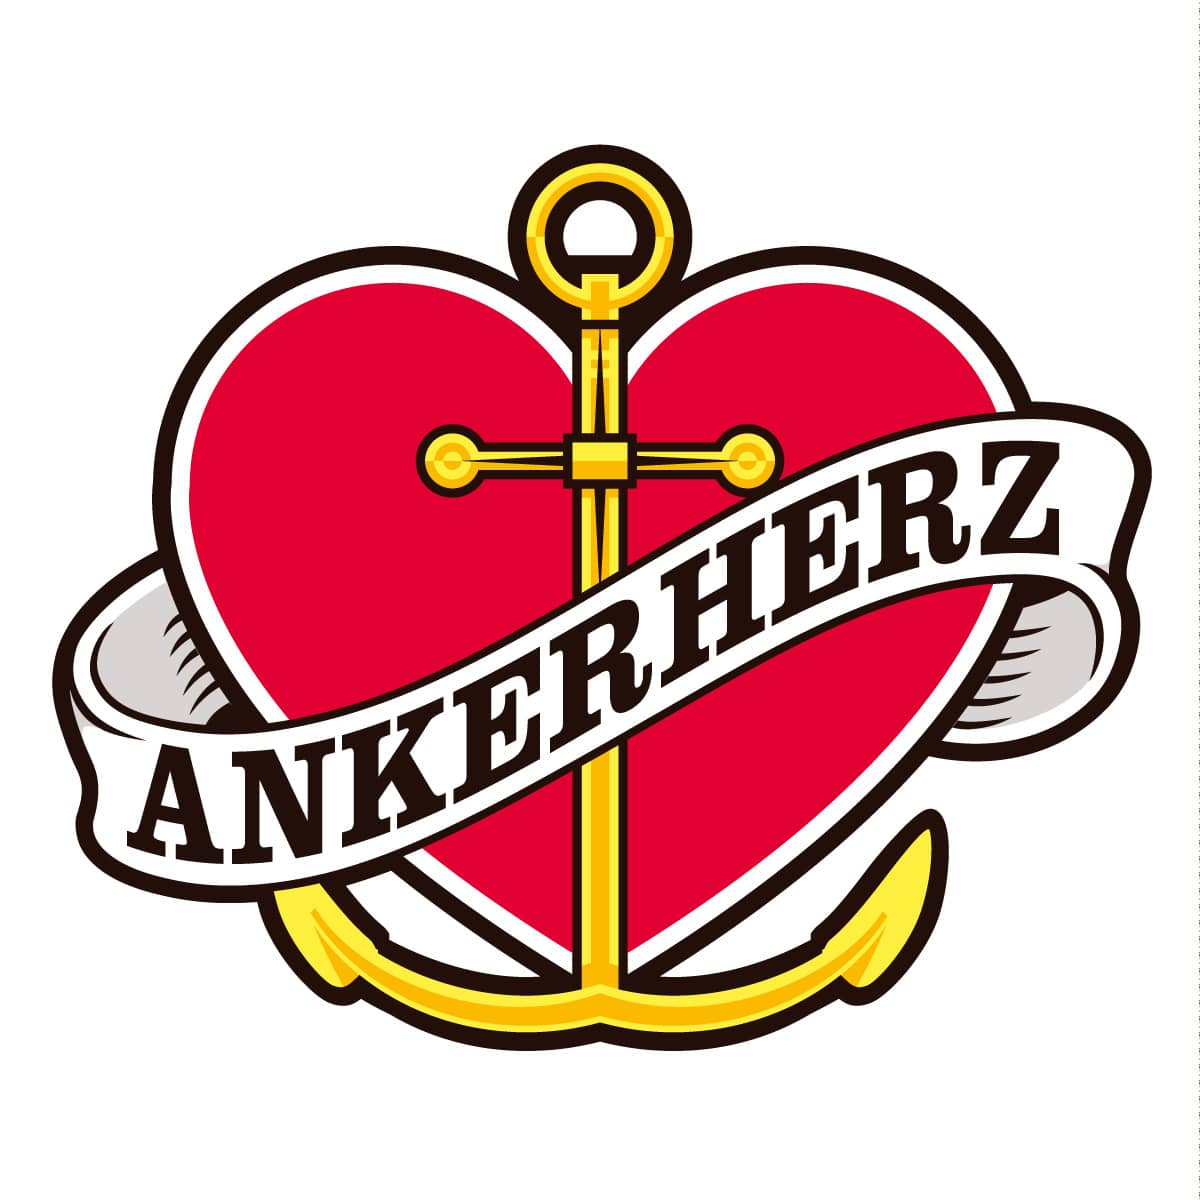 Ankerherz Verlag Logo - Drawn by Jerzovskaja  (Vector illustration drawn with Adobe Illustrator)